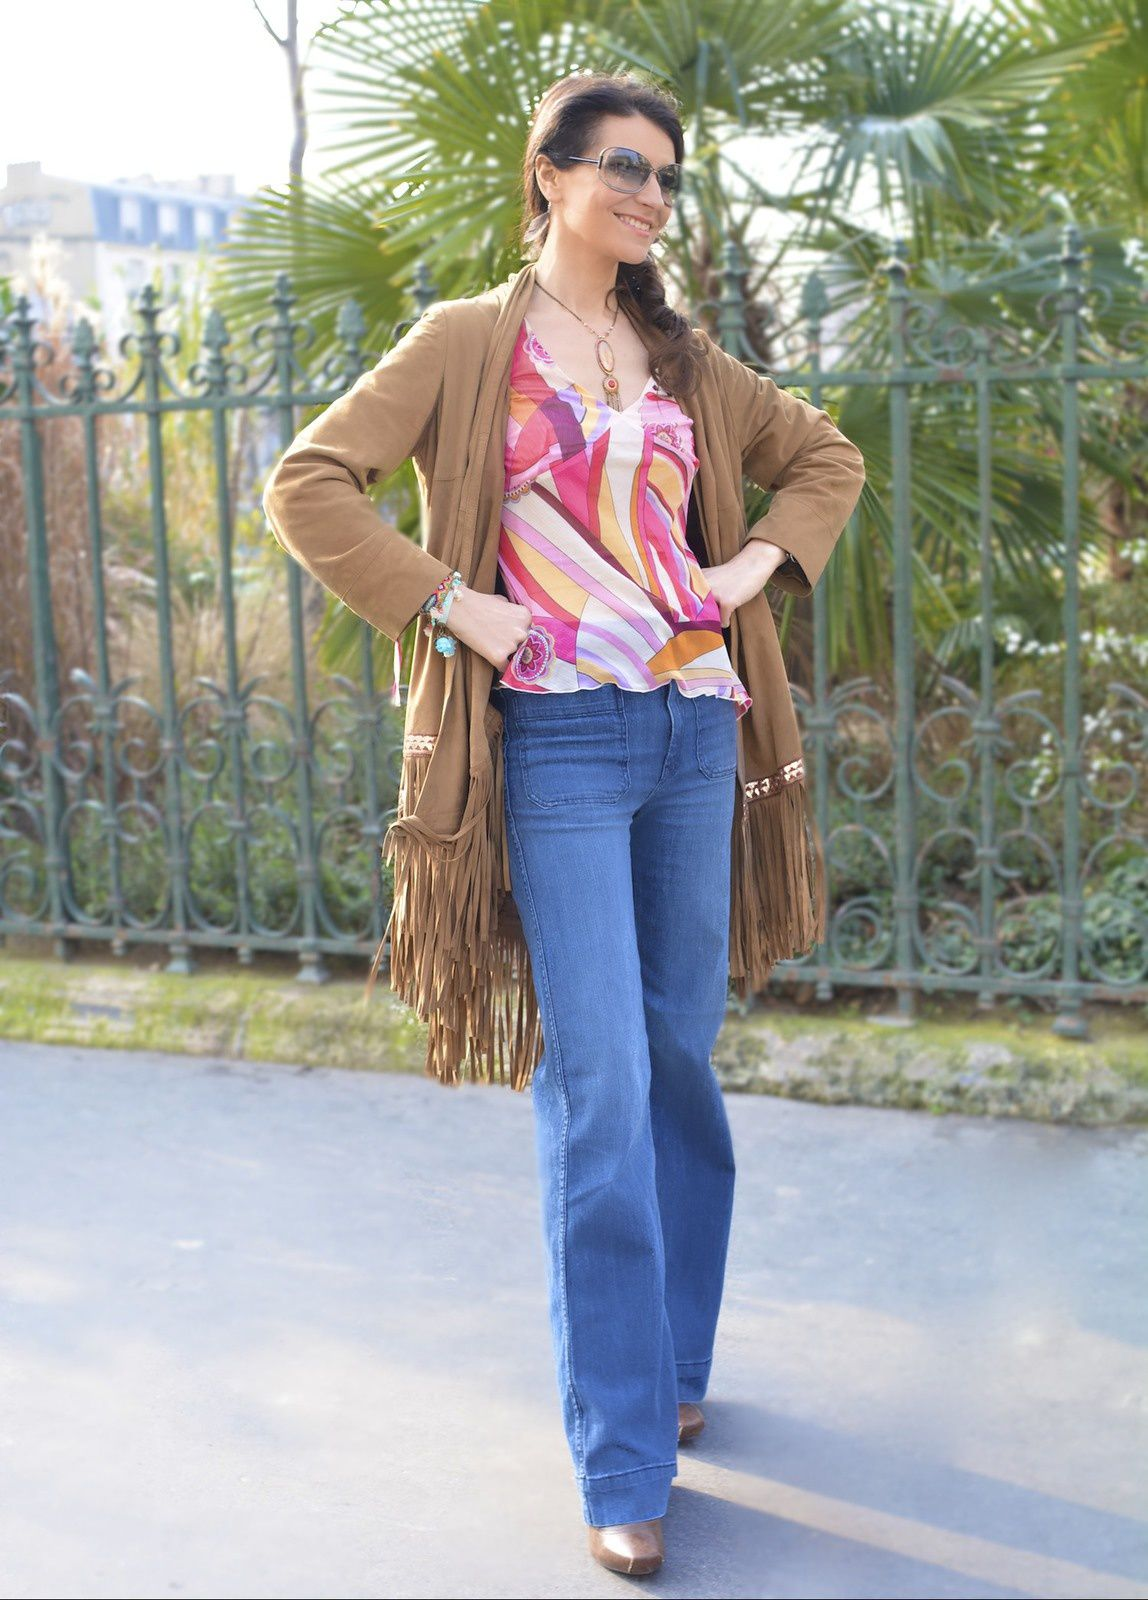 70's Glam